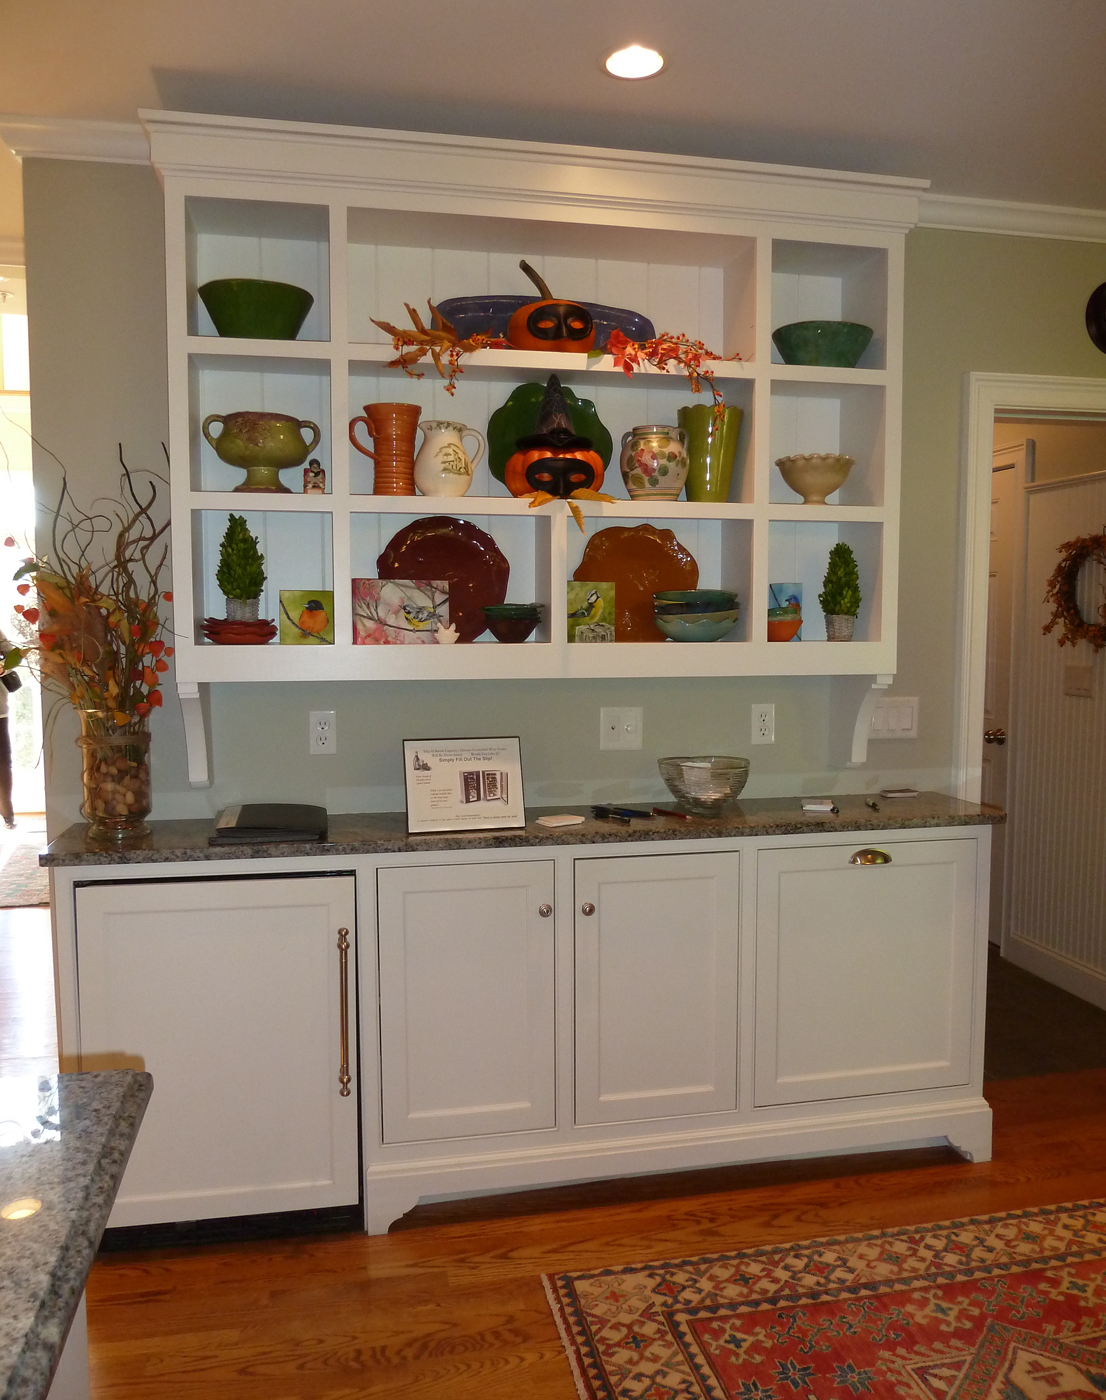 Design For Cabinet For Room: Design Vignettes: Kitchen Tour Week: Day Five